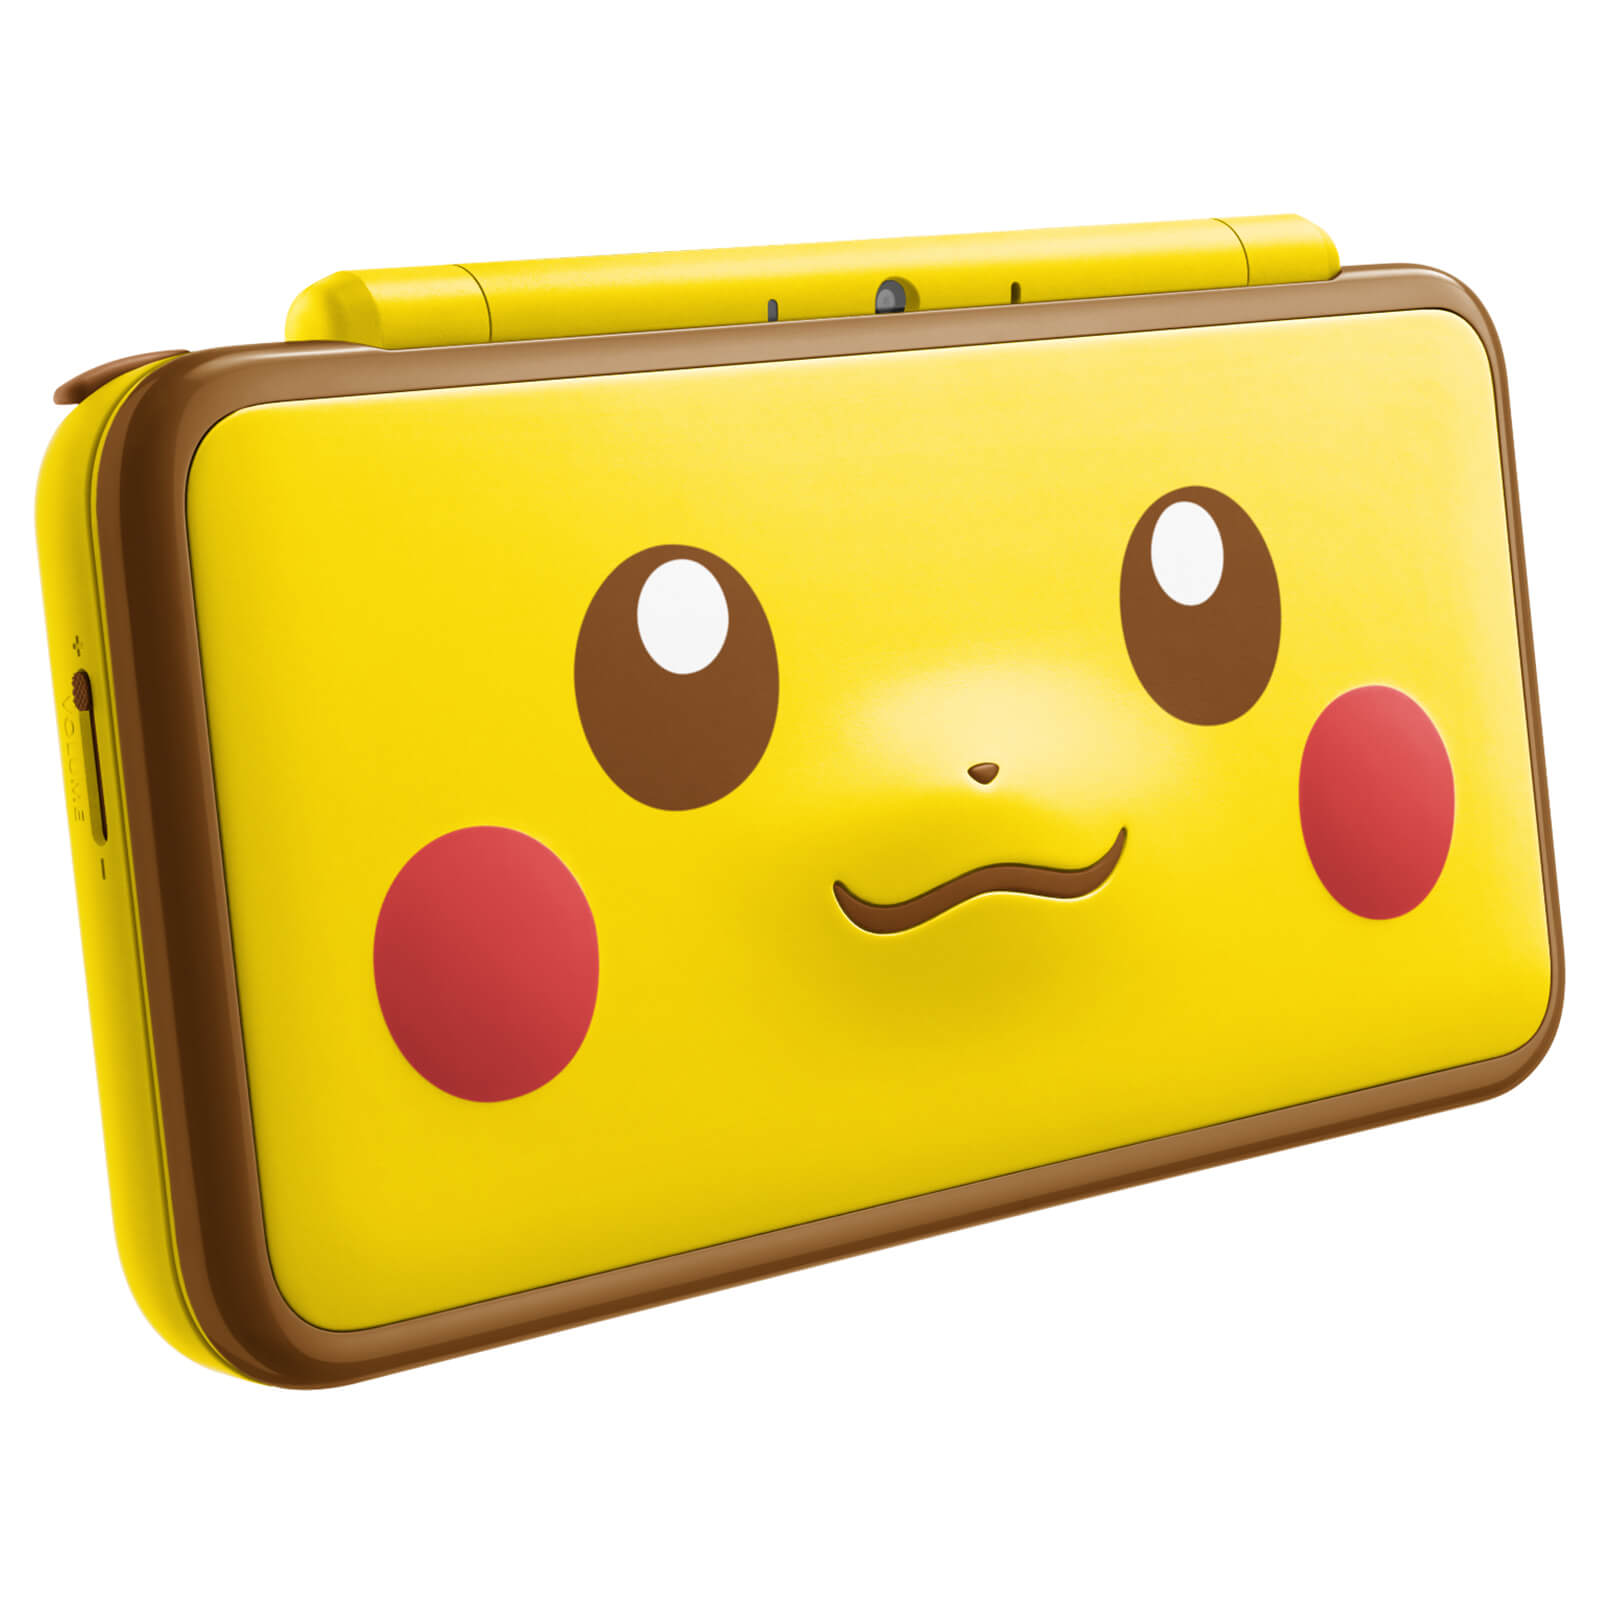 New Nintendo 2DS XL Pikachu Edition Closed